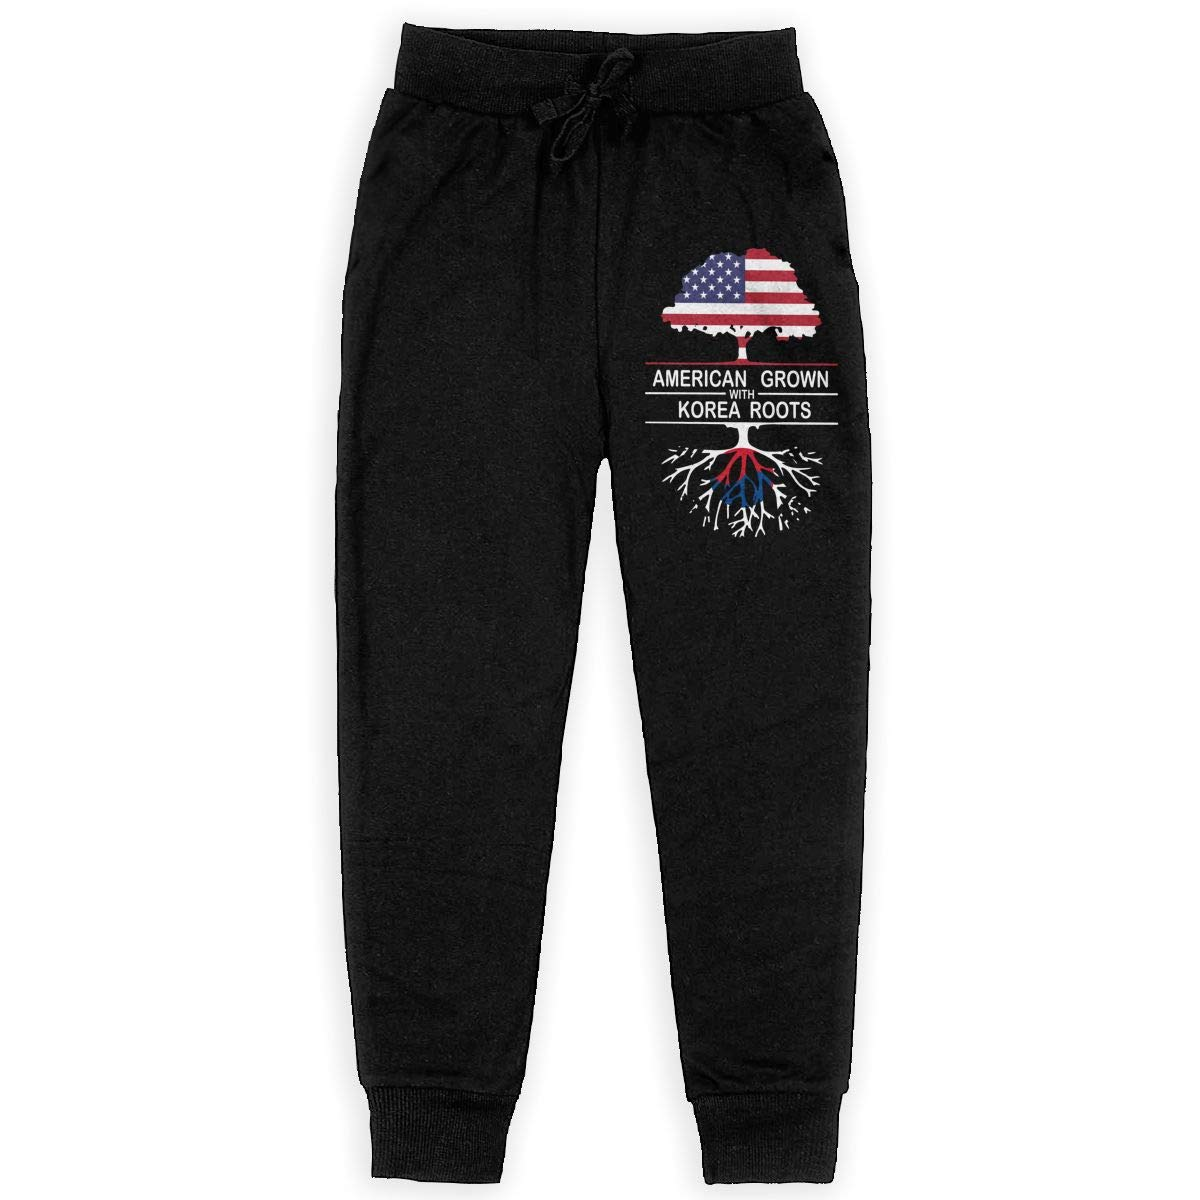 WYZVK22 American Grown with Korea Roots-1 Soft//Cozy Sweatpants Boys Trousers Boy for Teenager Girls